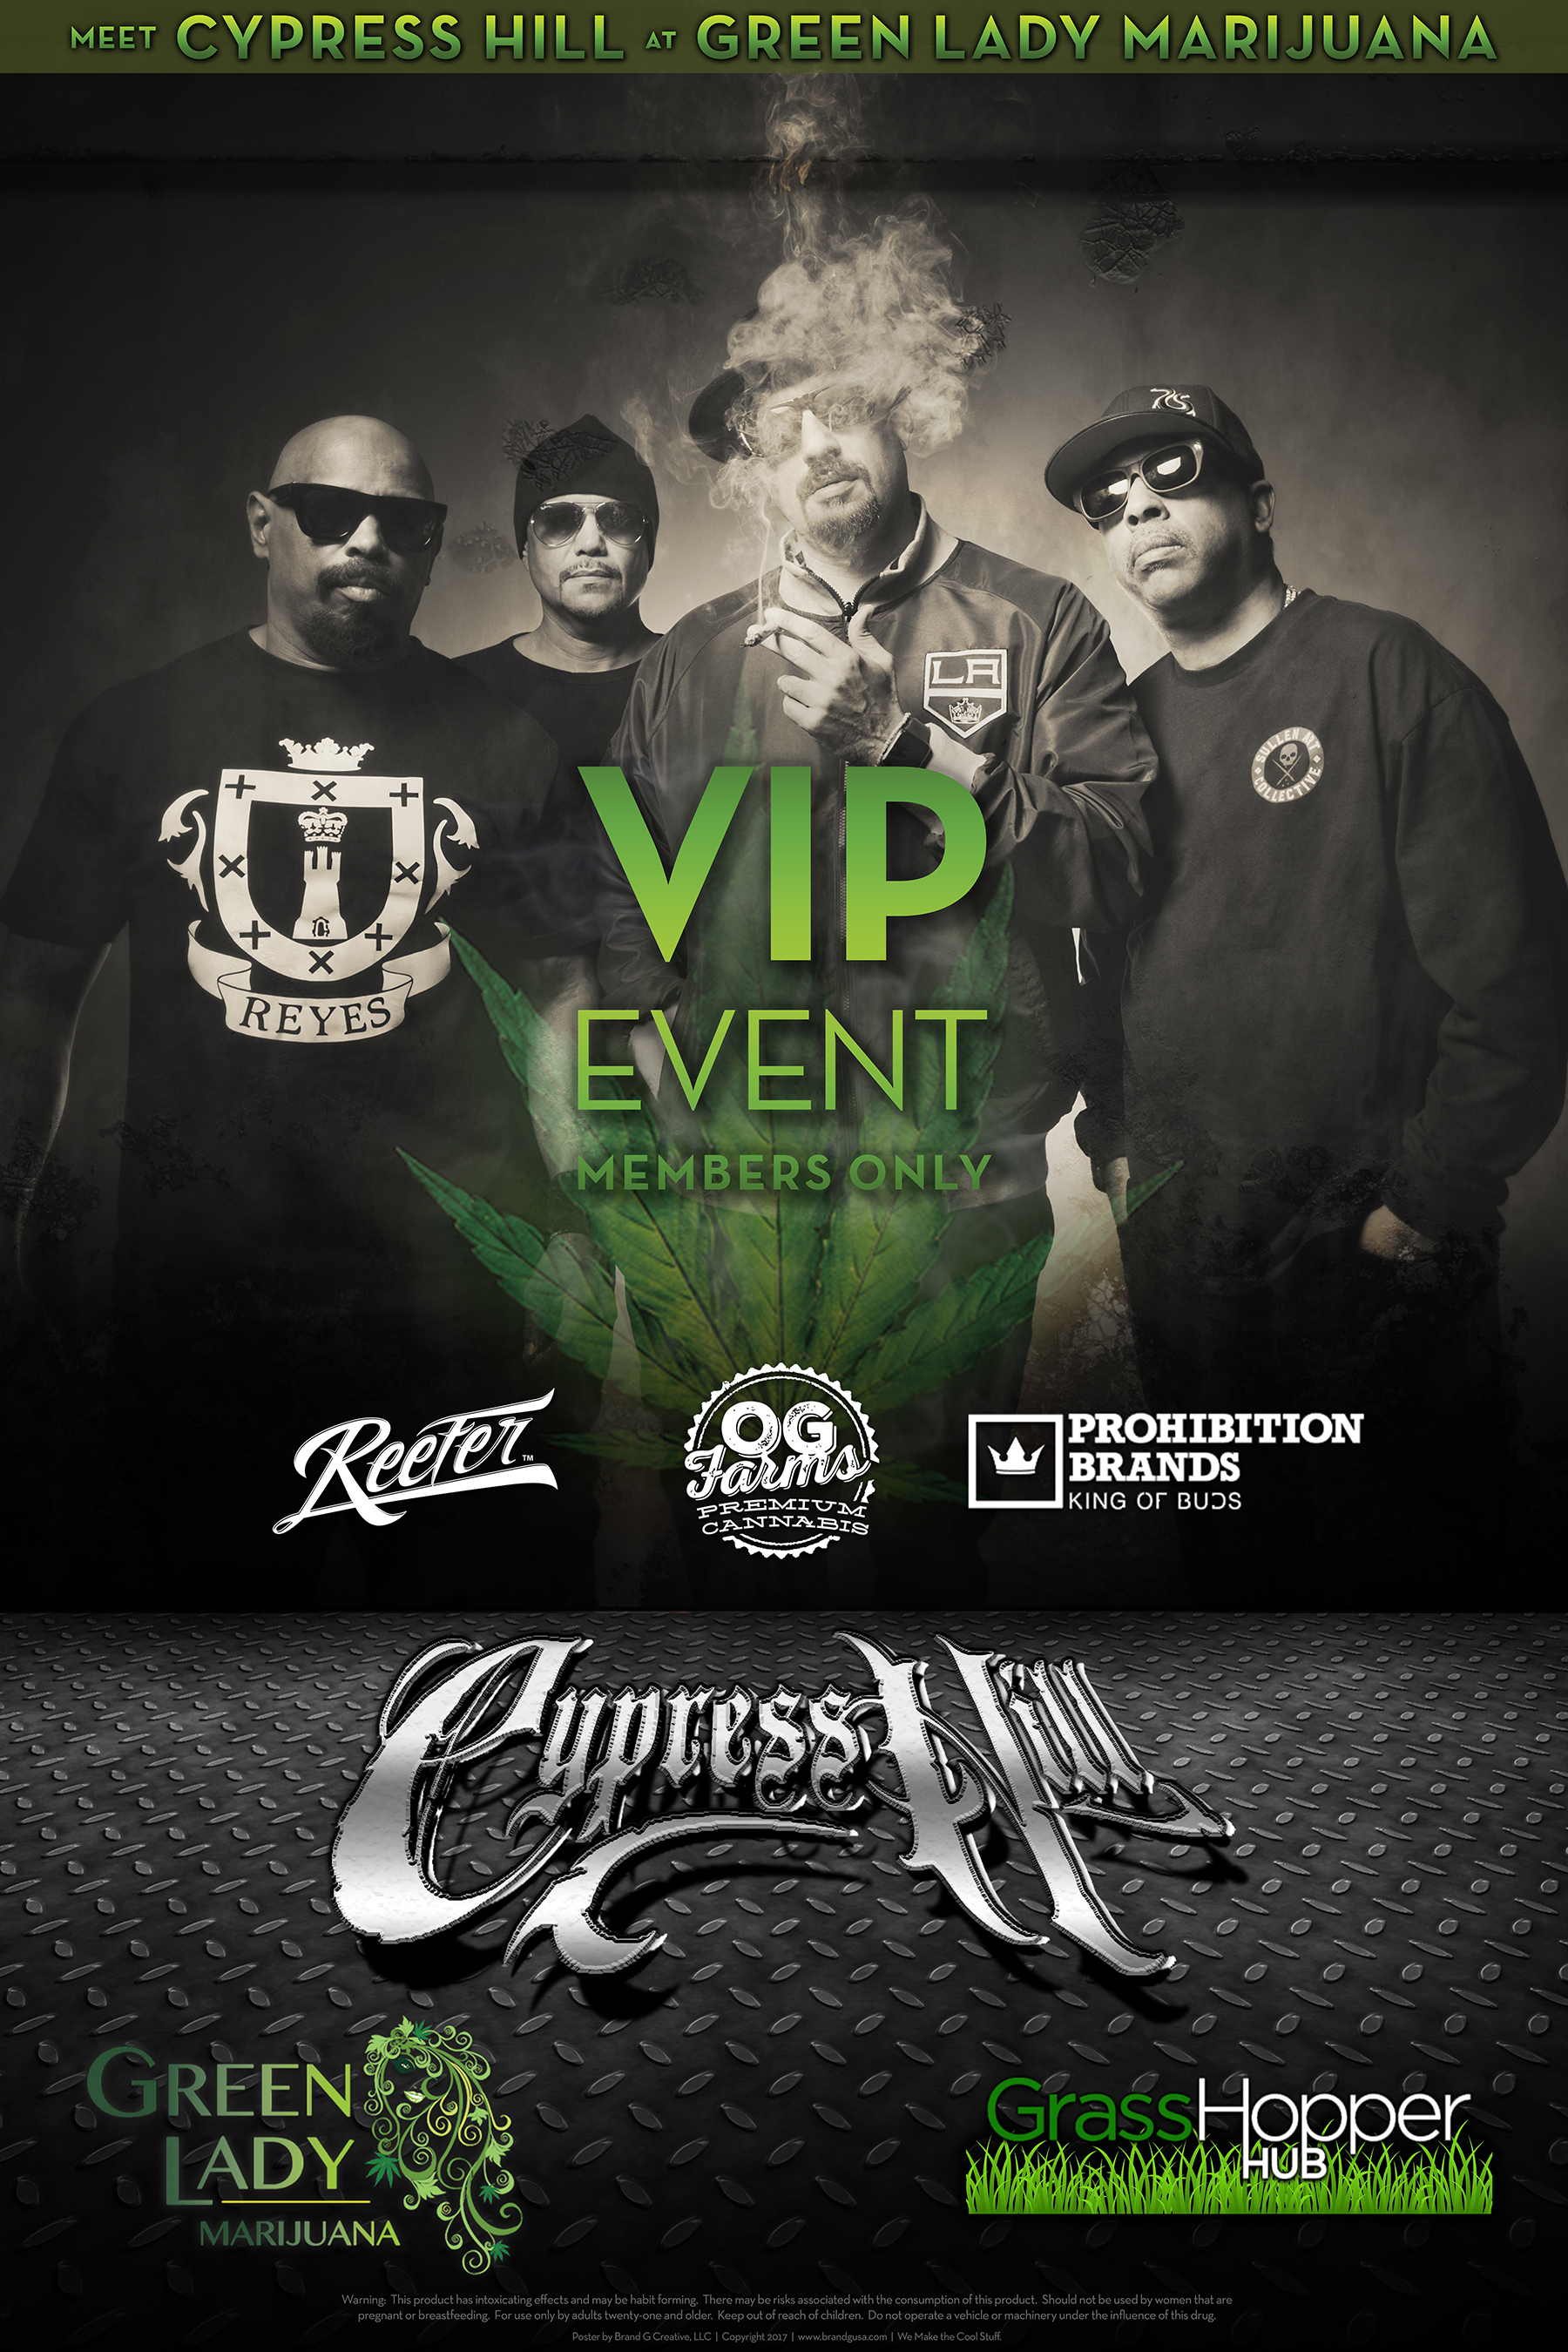 Cypress Hill Poster by Brand G Creative